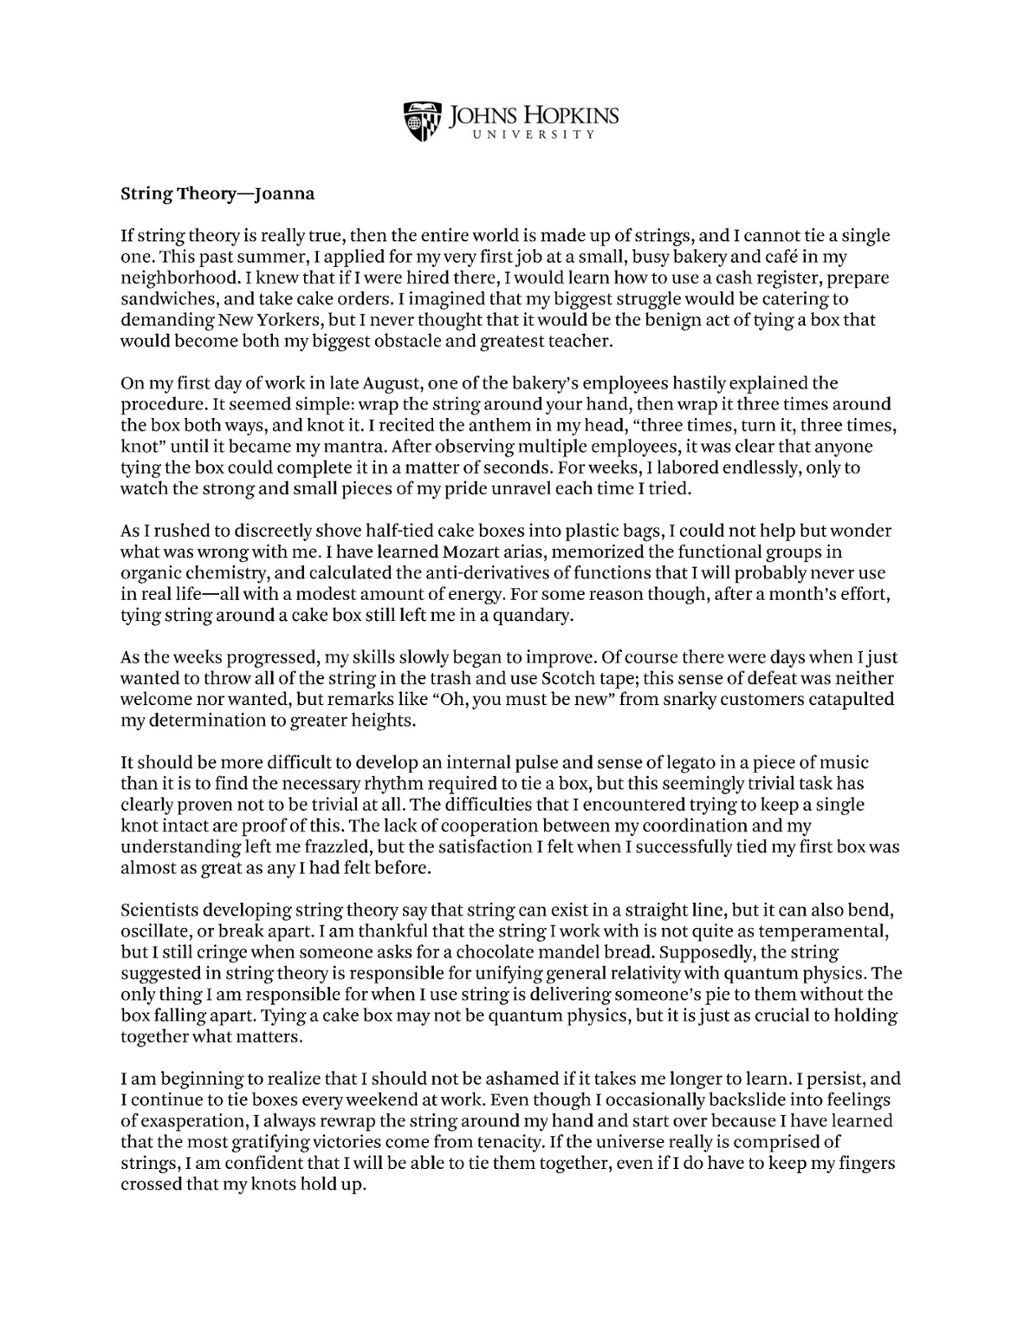 002 Johns Hopkins College Essays Essay Example Remarkable Prompt Large